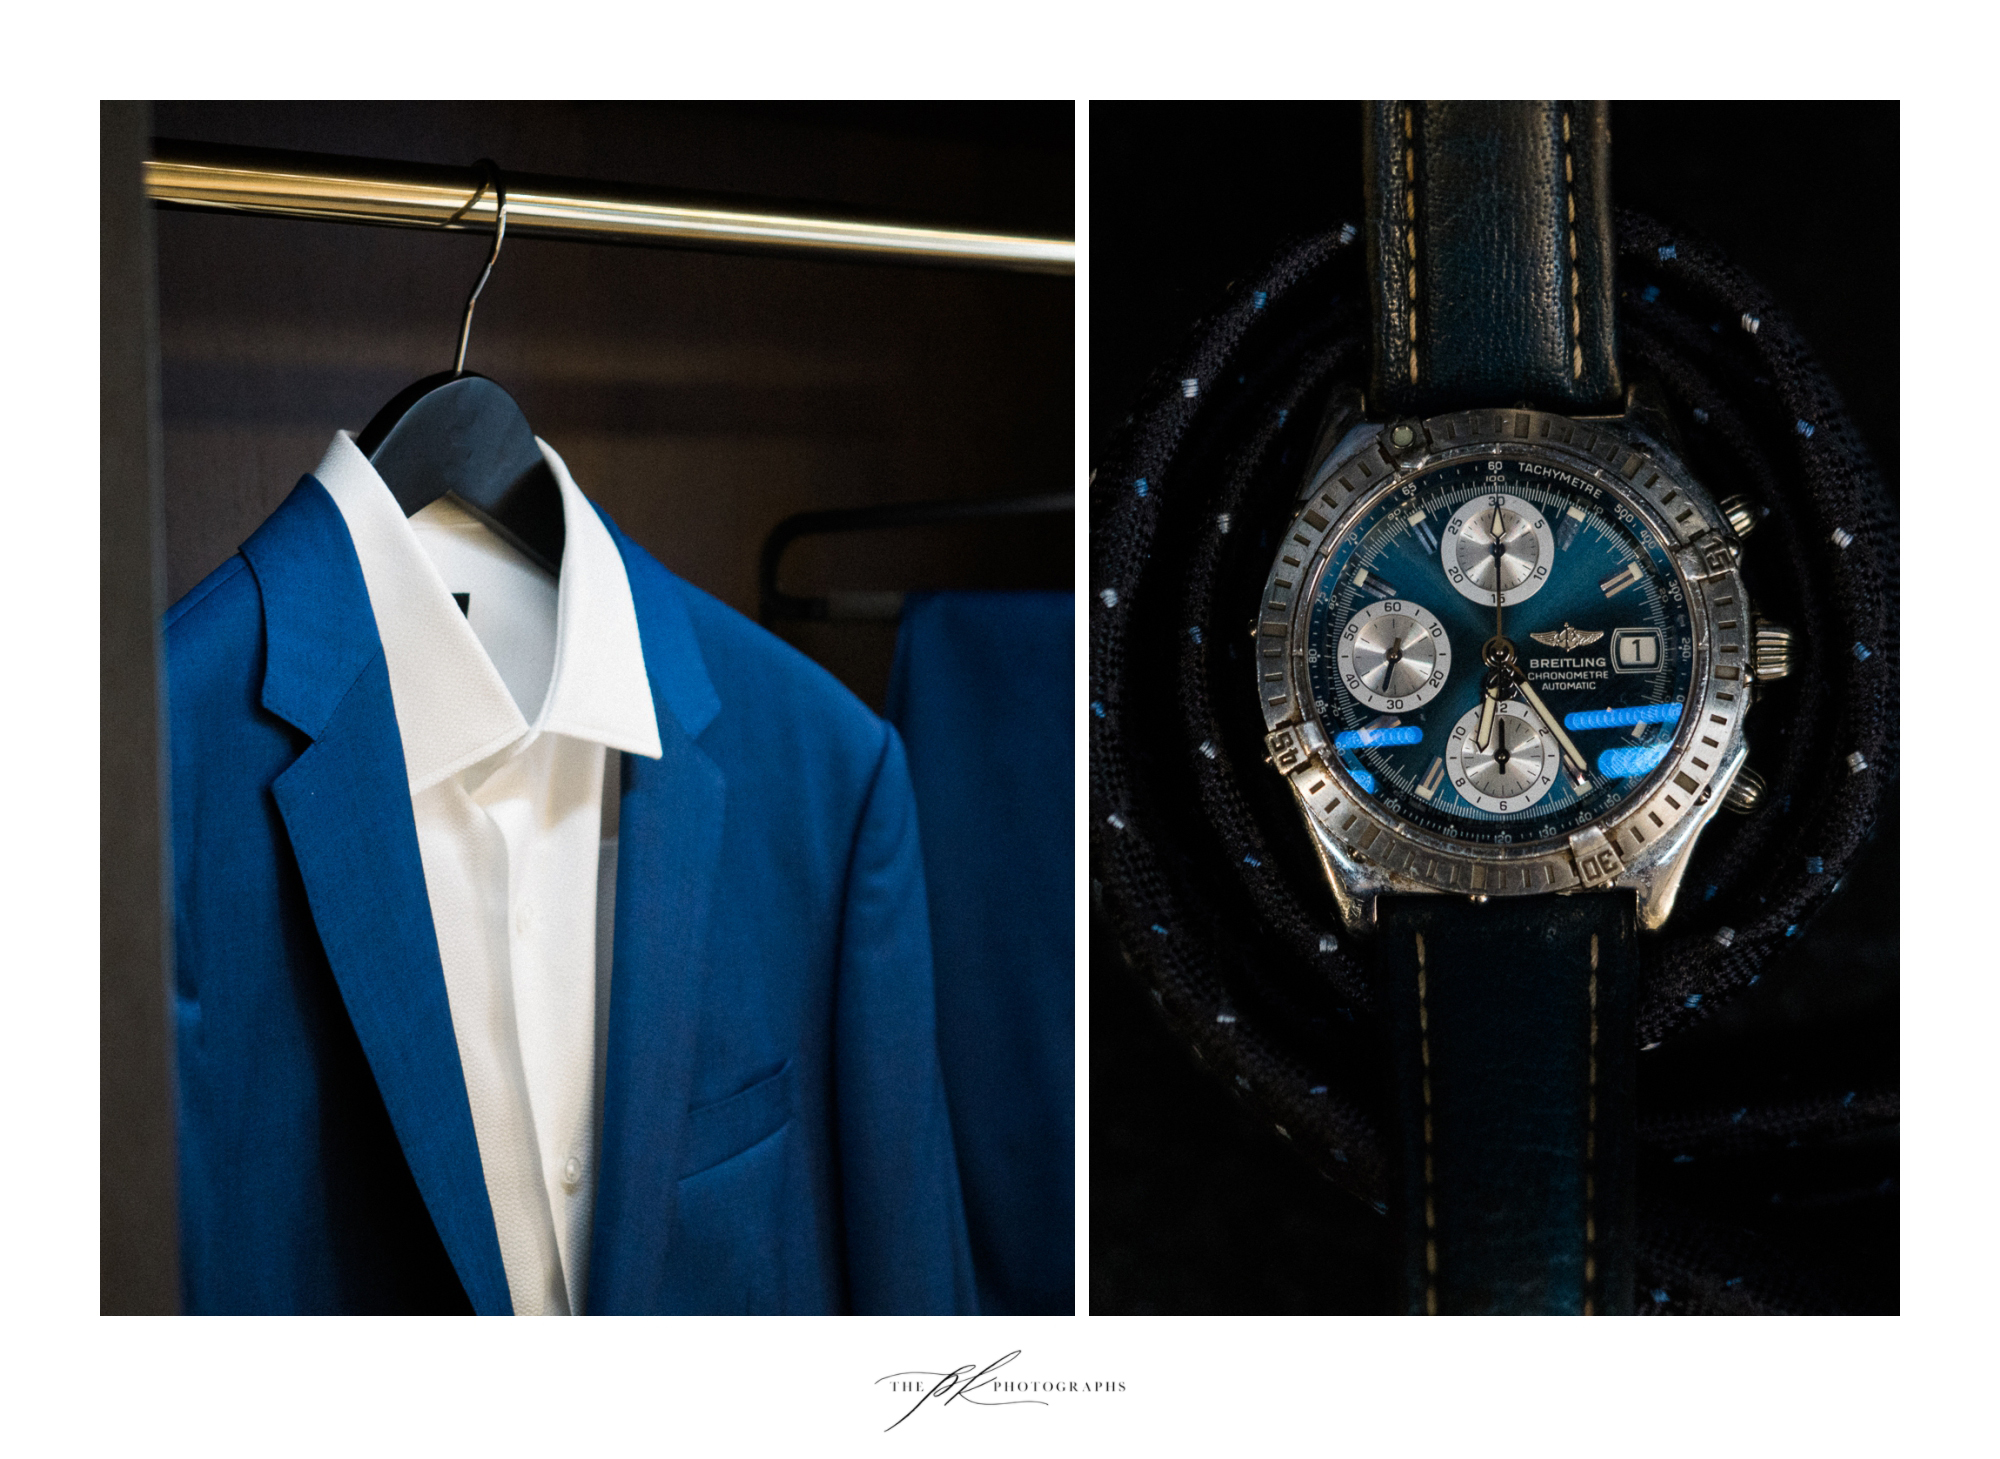 Groom's suit and watch.